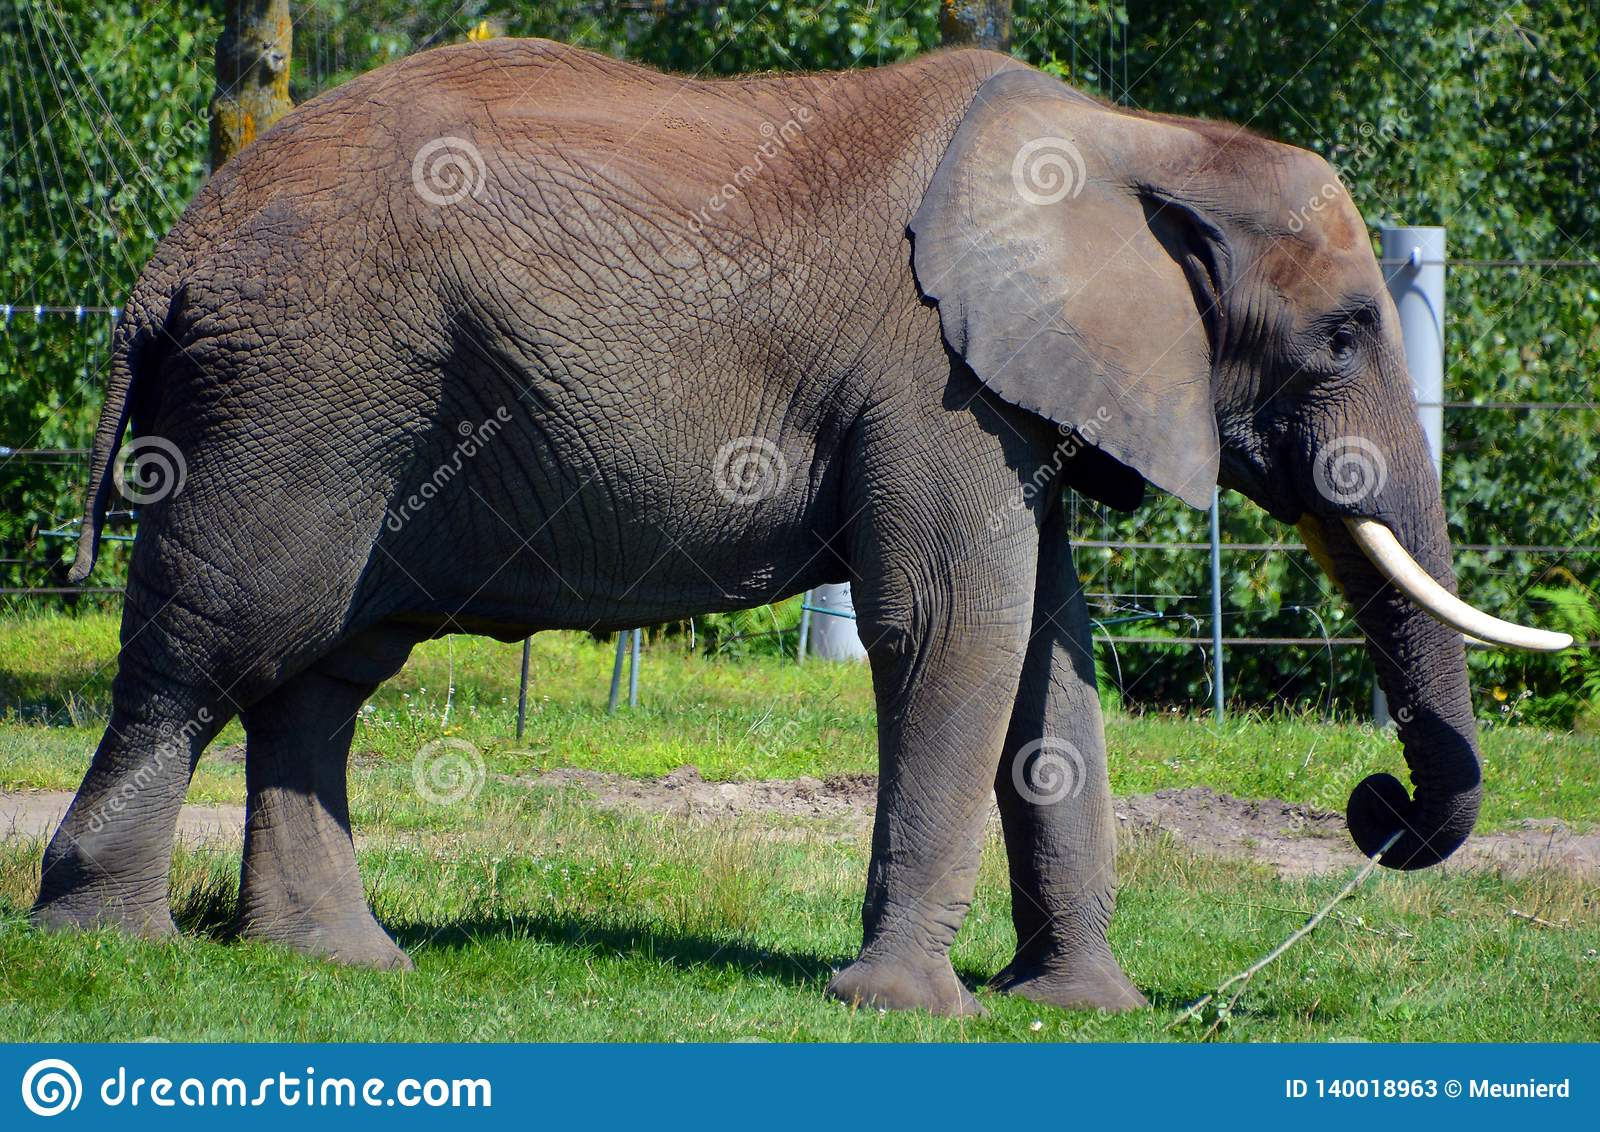 Are Elephants Mammals >> Elephants Are Large Mammals Of The Family Elephantidae Stock Image